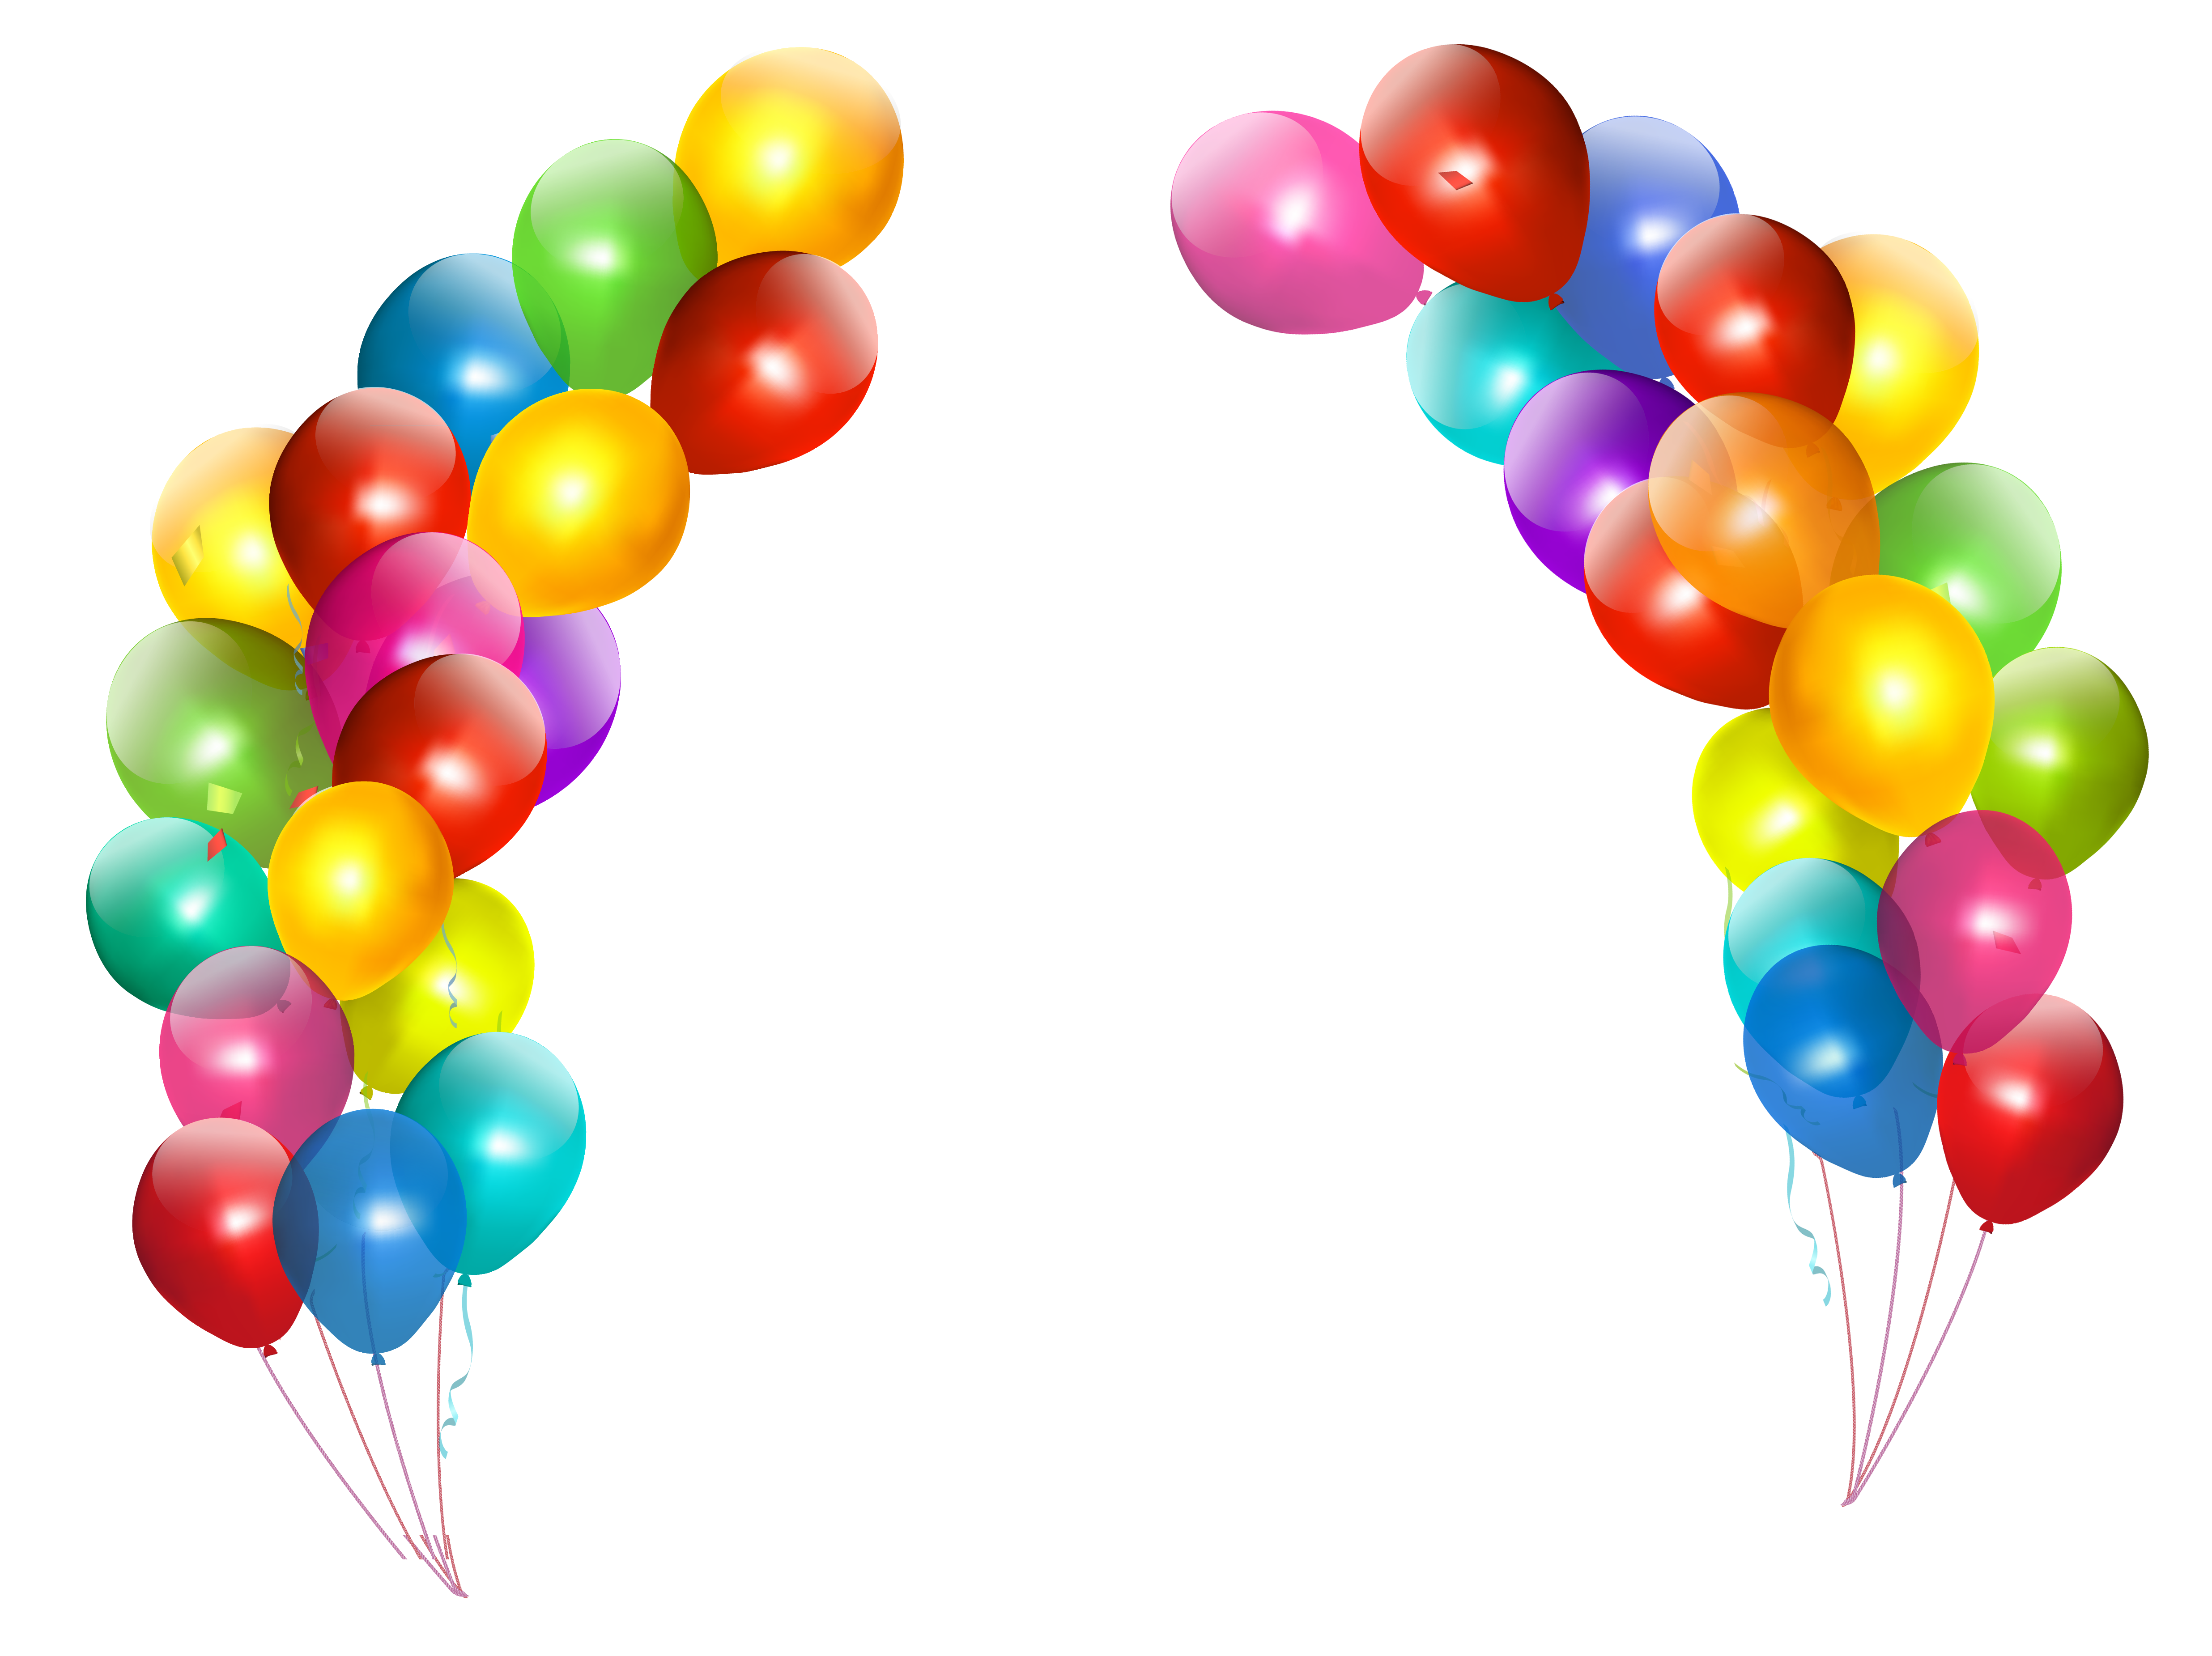 Balloon colorful. Background clipart free download